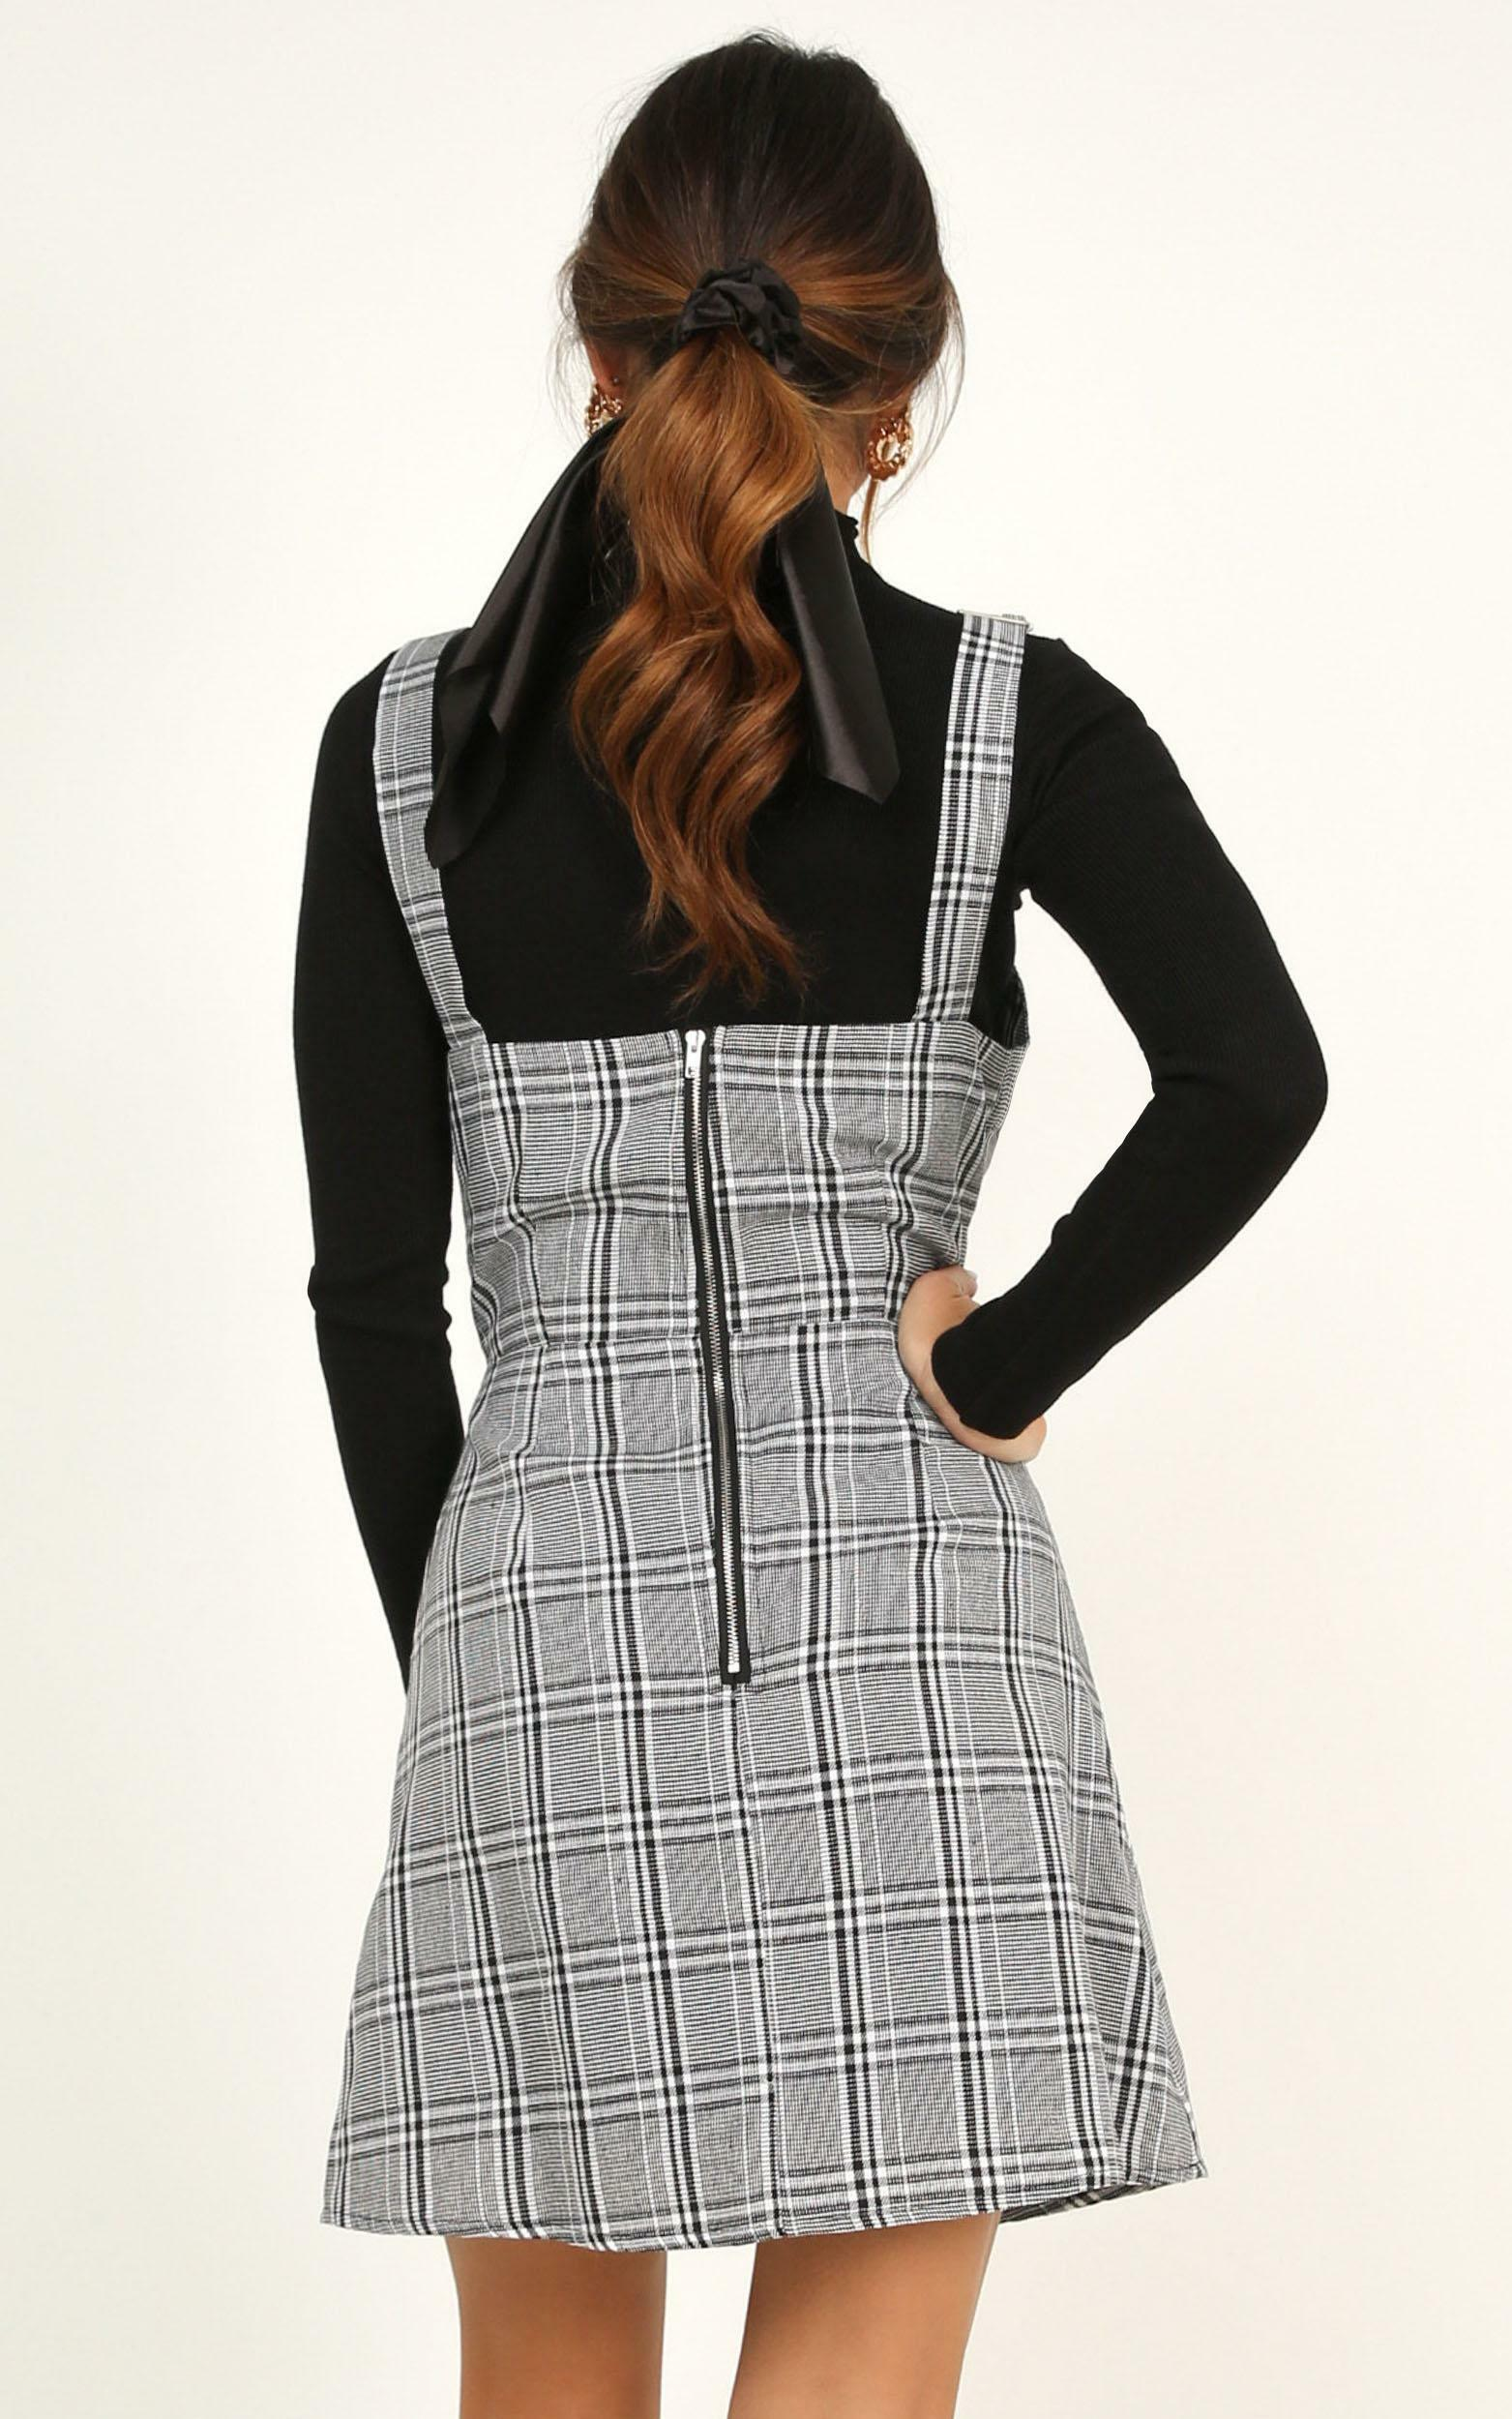 Winter Valley Dress in grey check - 20 (XXXXL), Grey, hi-res image number null